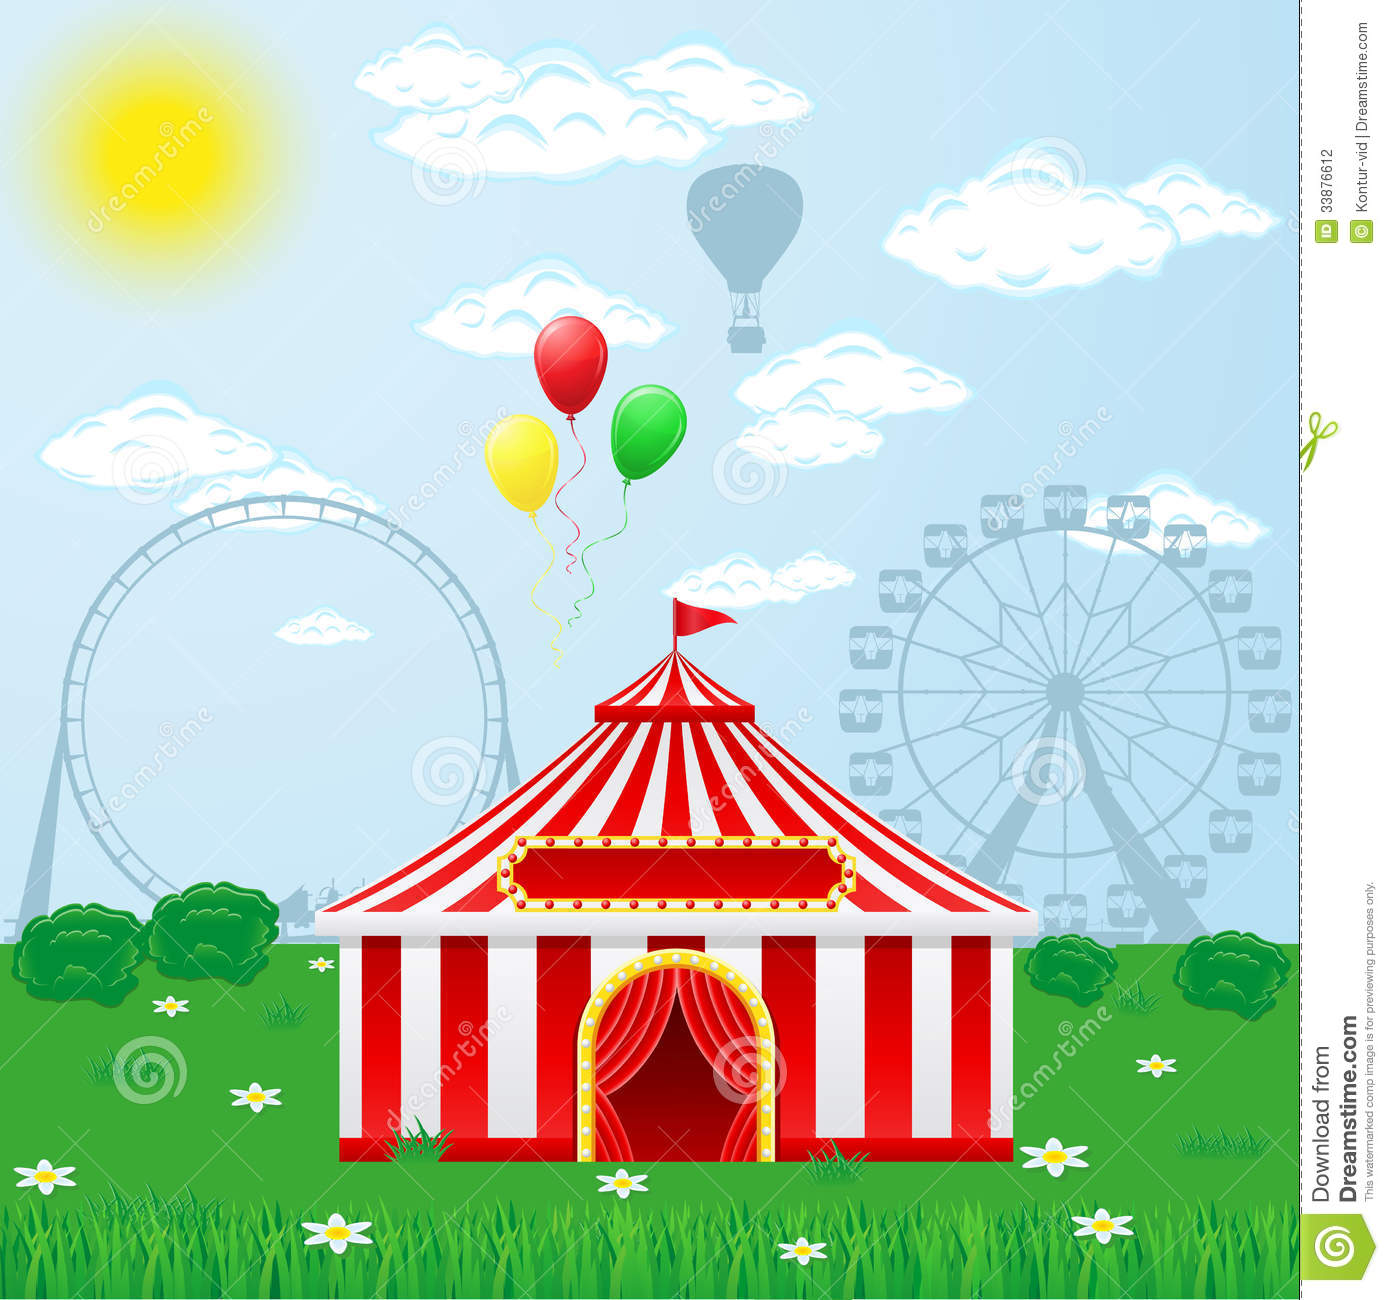 Circus tent on nature stock vector. Illustration of open ...